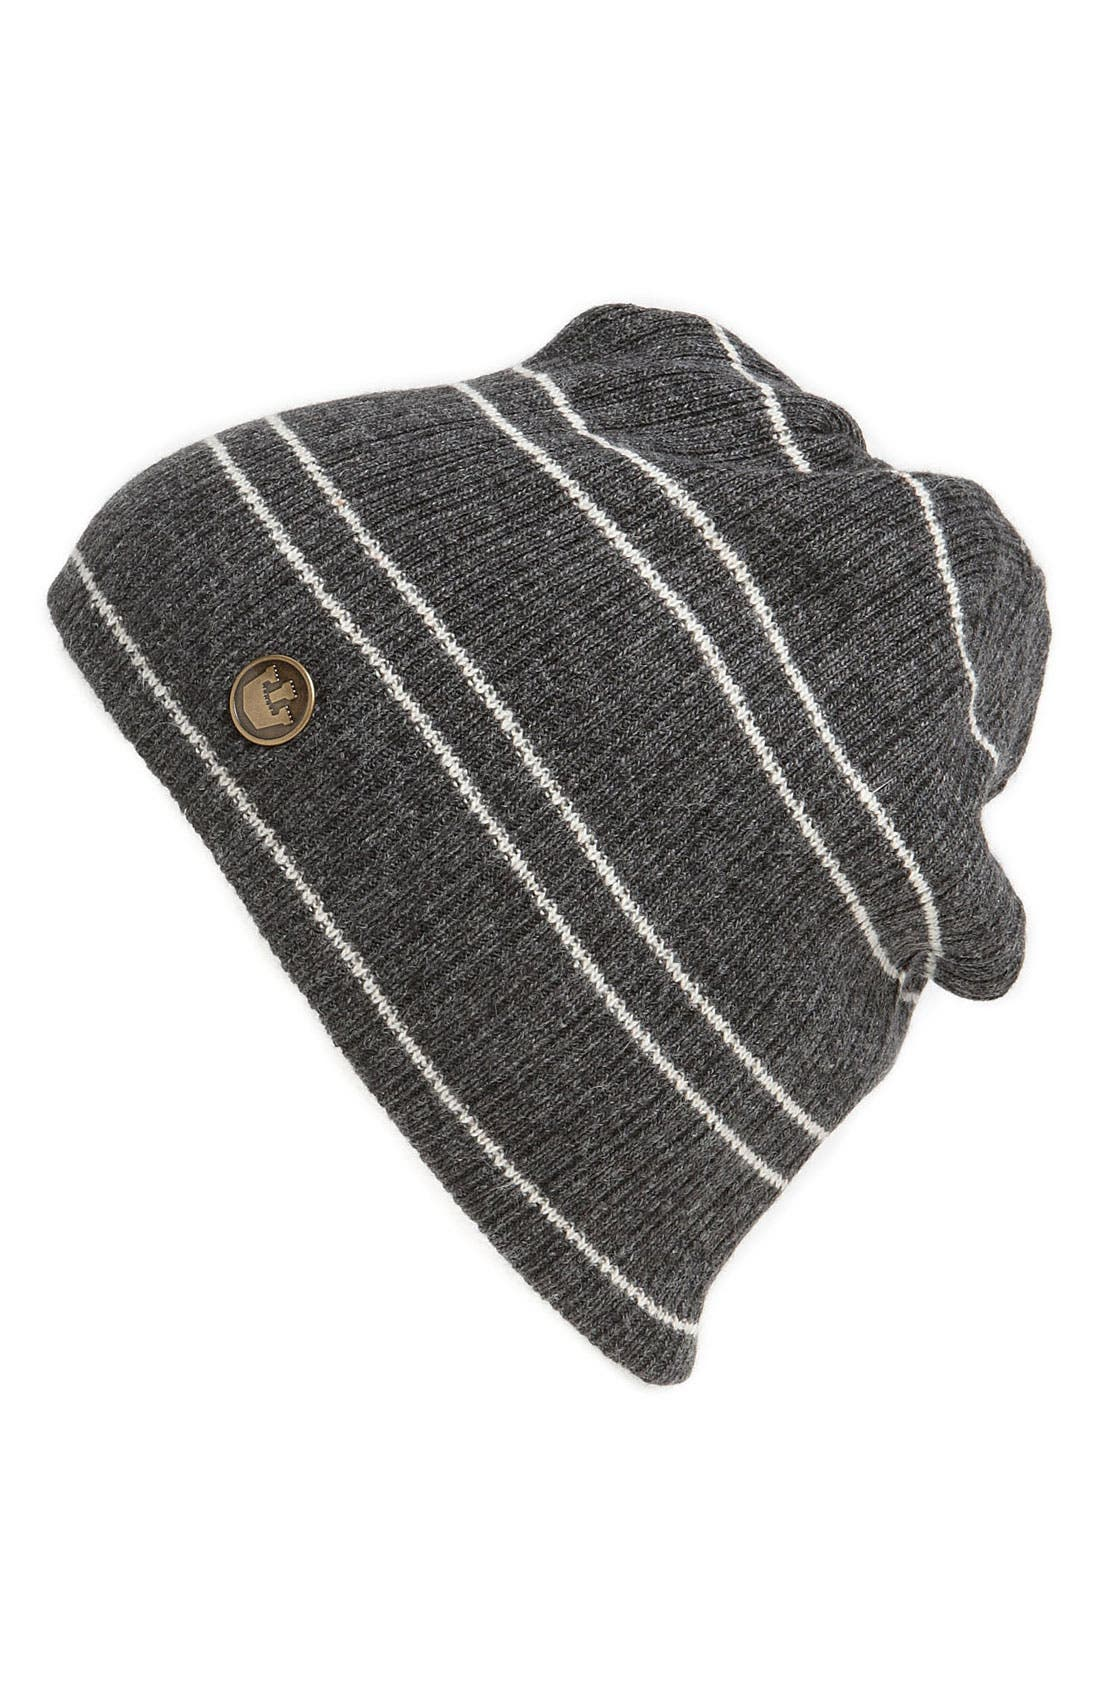 Main Image - Goorin Brothers 'Tiger' Stripe Knit Cap